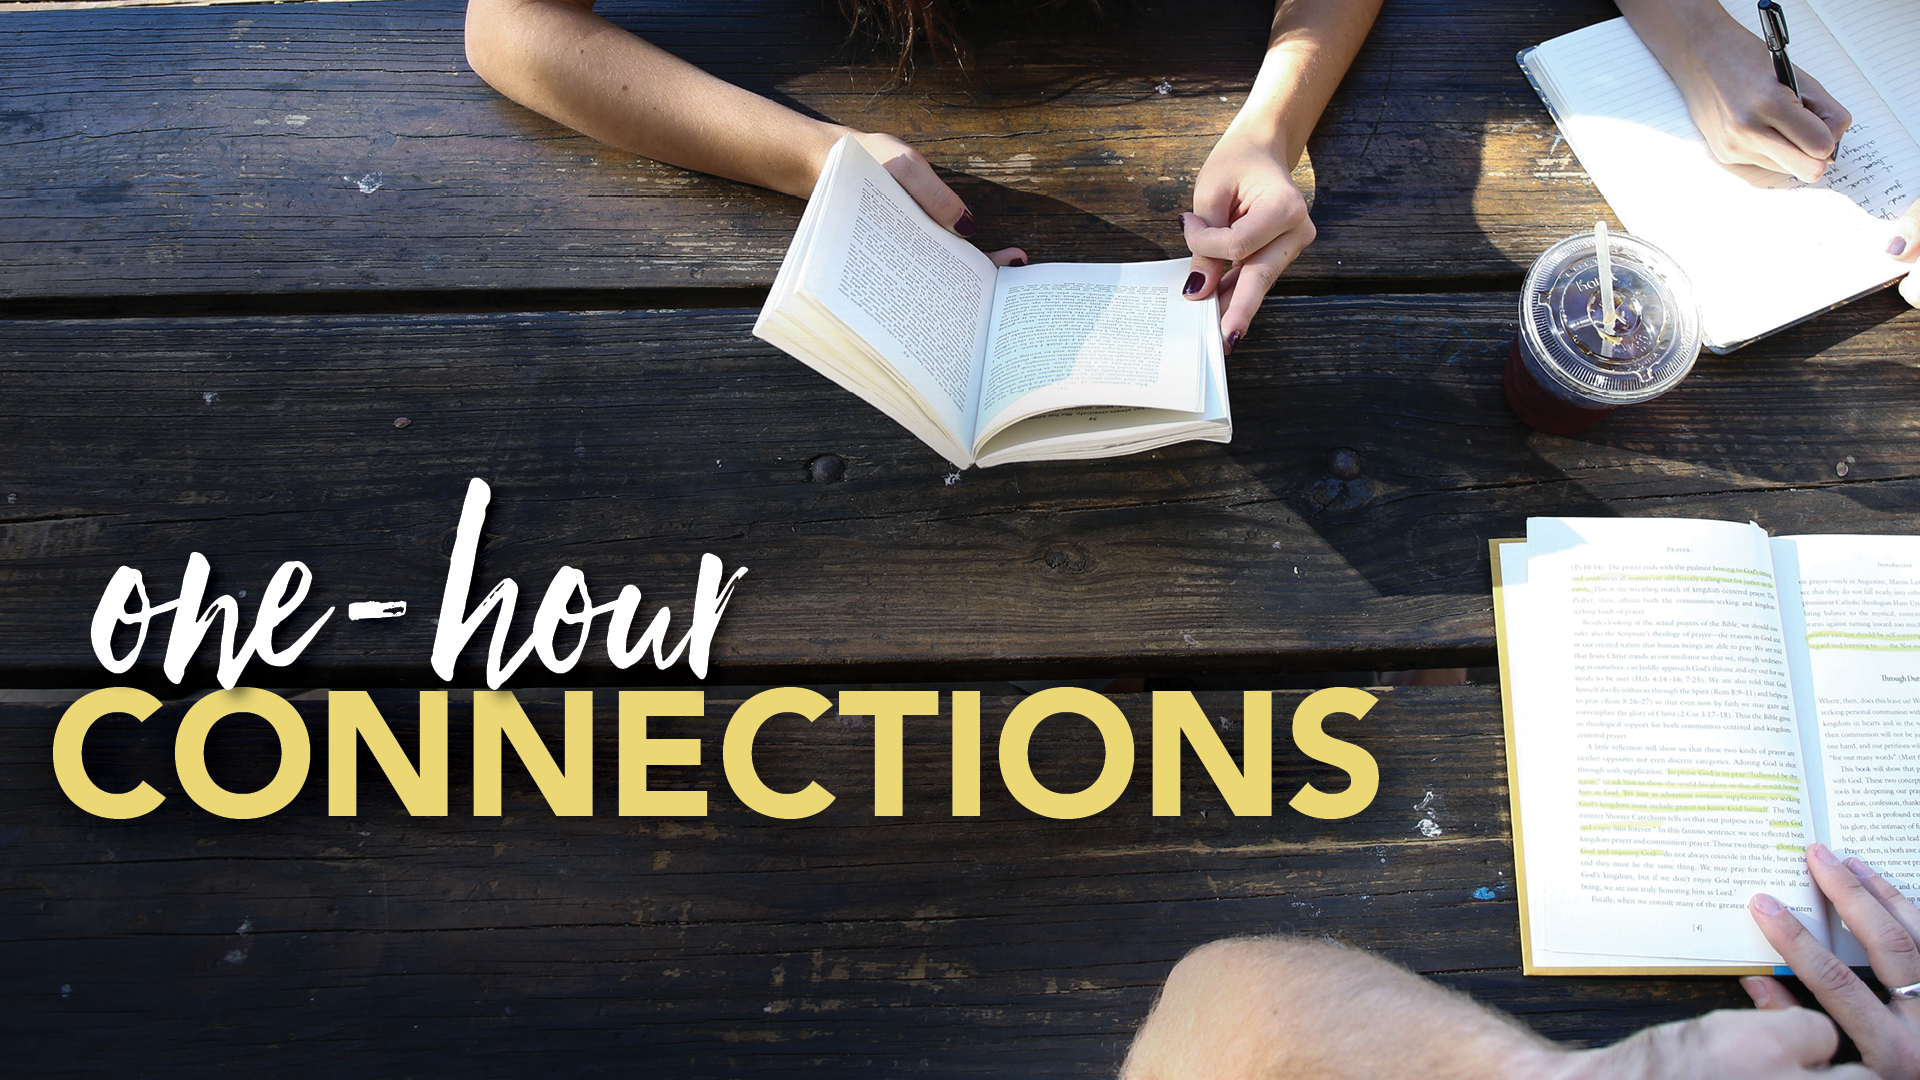 One-Hour Connections